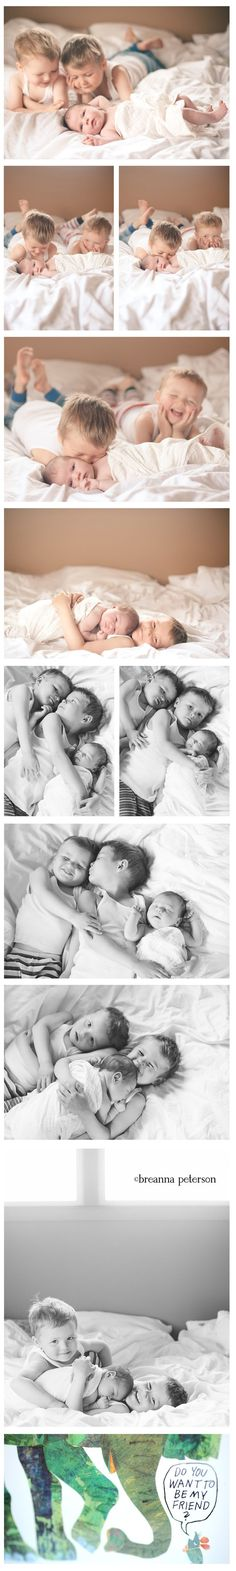 Adorable. If you're having a second or third baby, you can include your older kids in the newborn photo shoot as well!